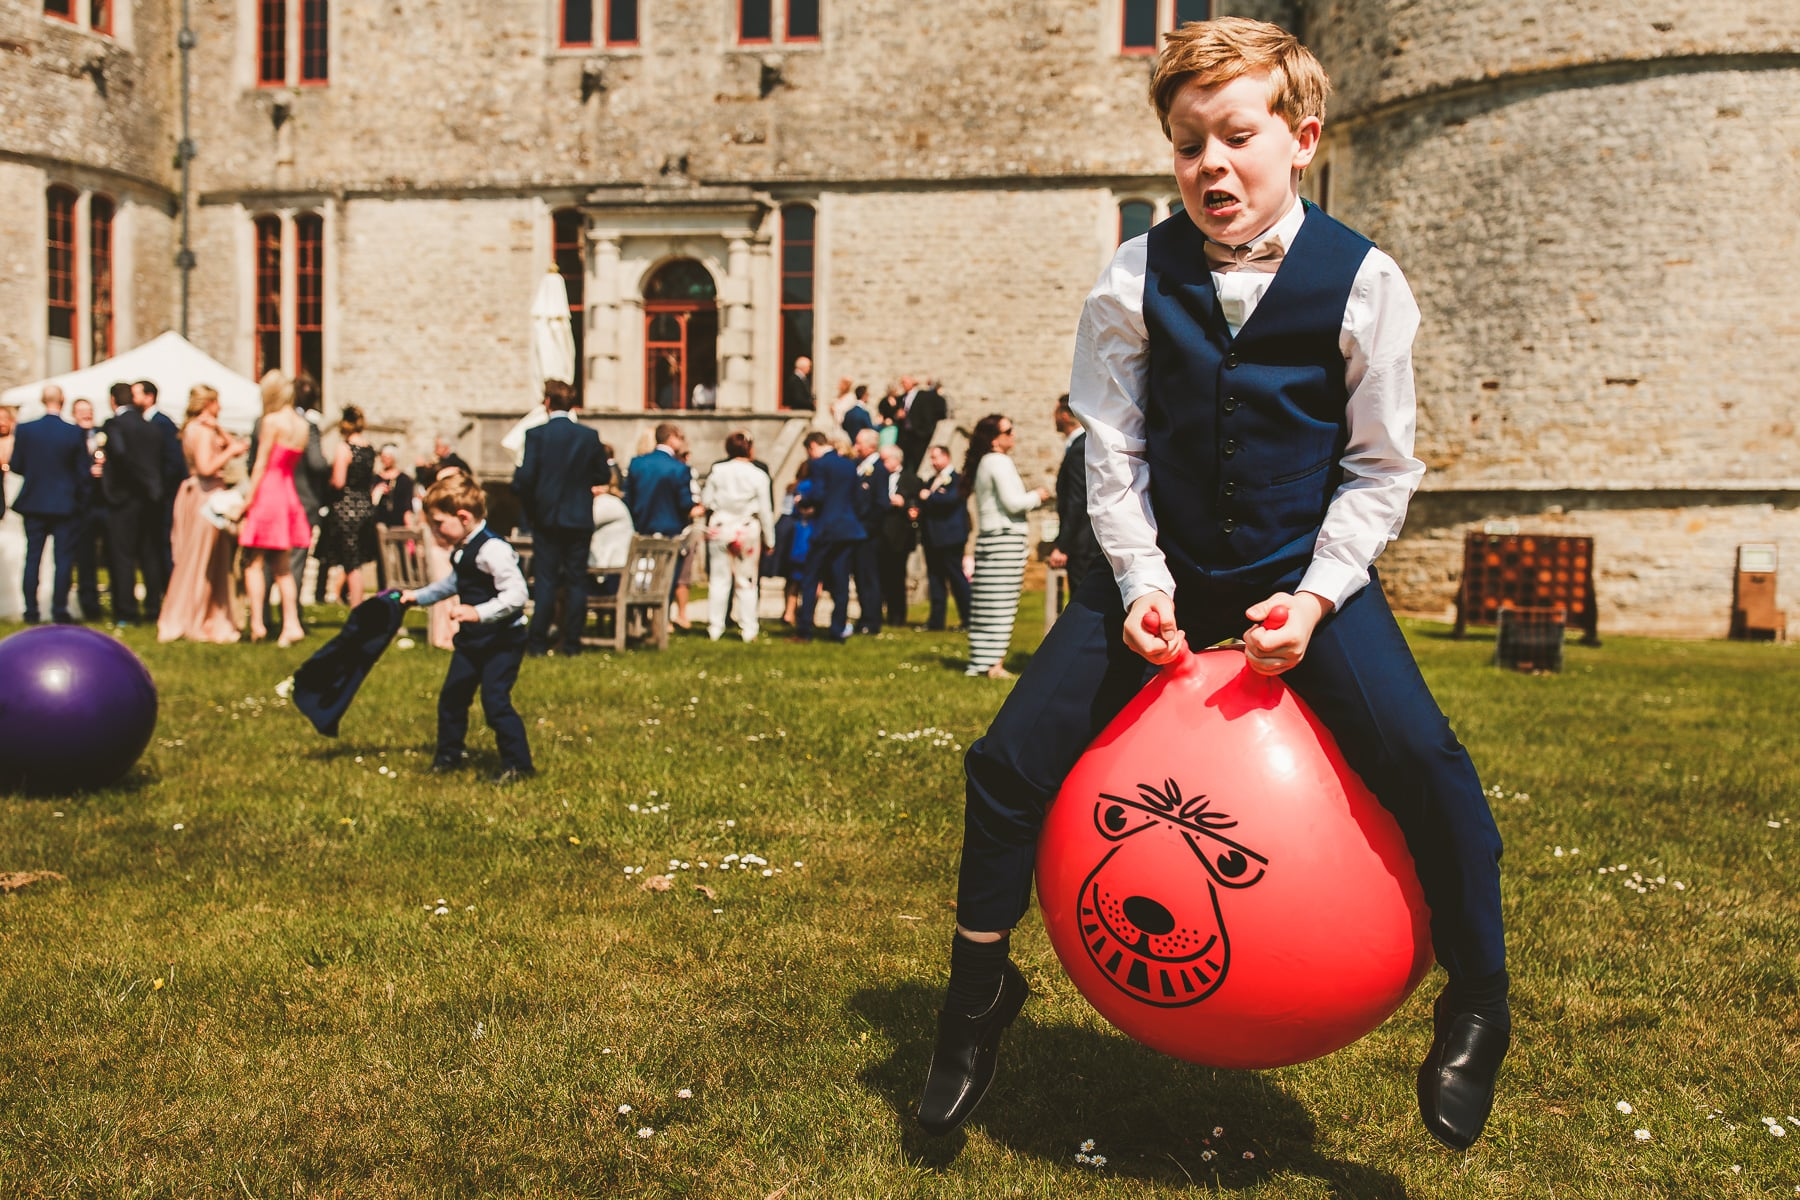 Lawn-games-Lulworth-Castle-wedding-photography